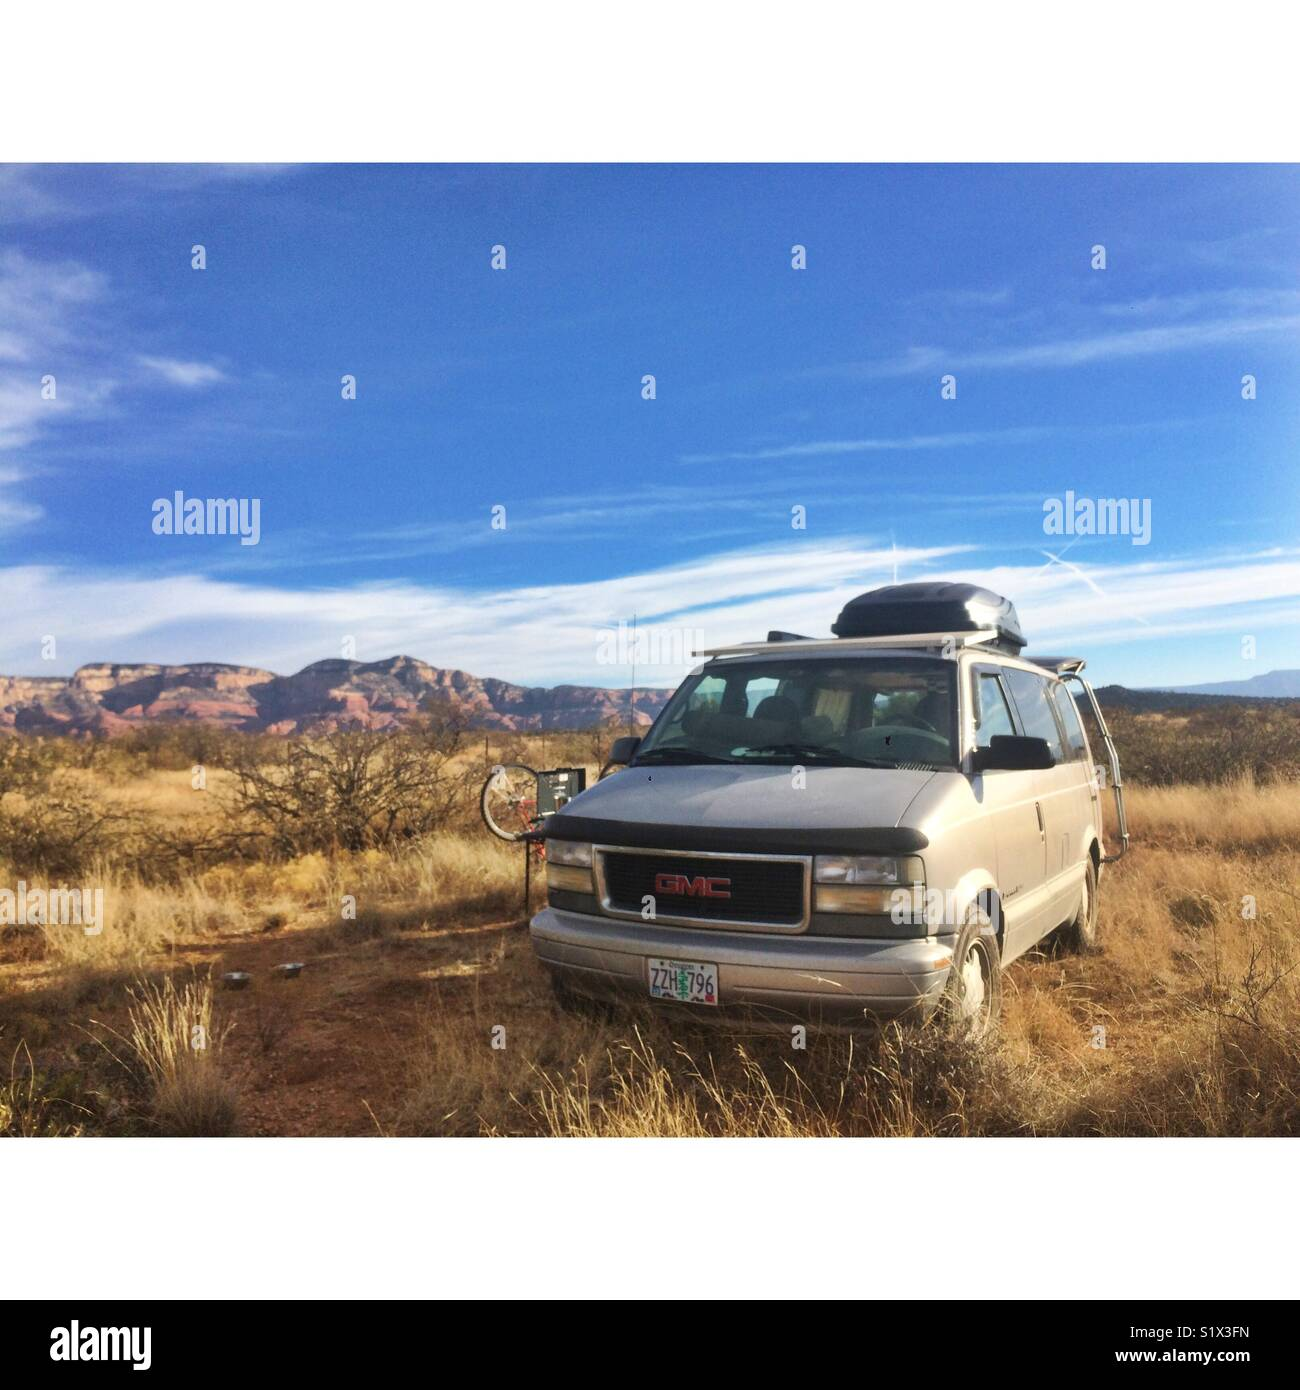 Converted van life in the southwest. Solar energy outfitted. Stock Photo